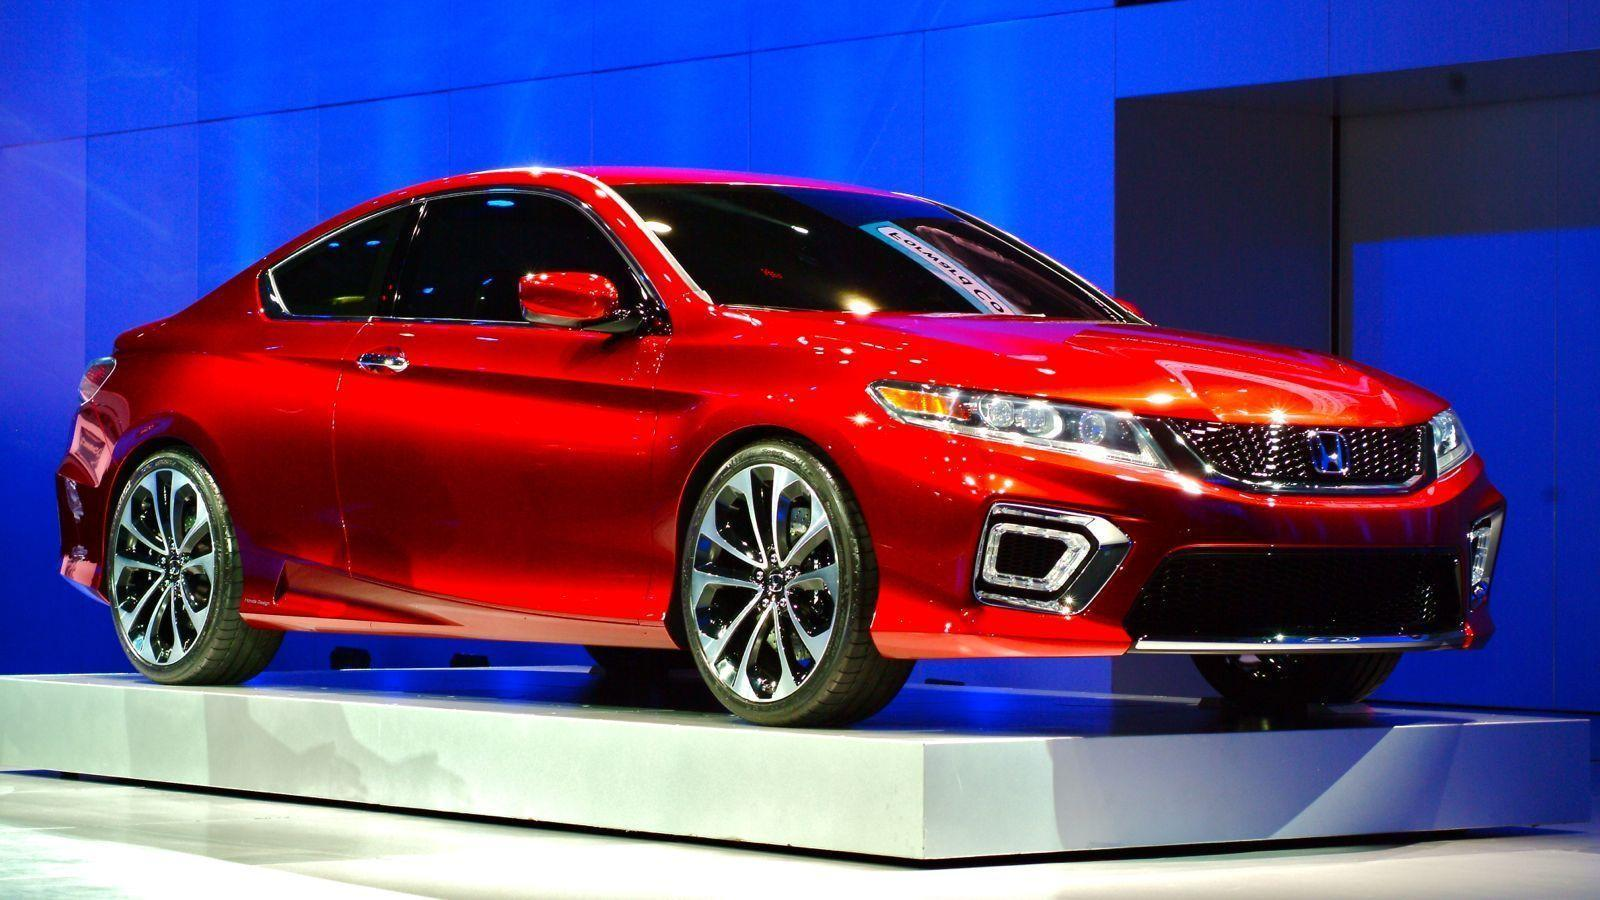 2015 Honda Accord Coupe Wallpapers   Wallpaper Cave